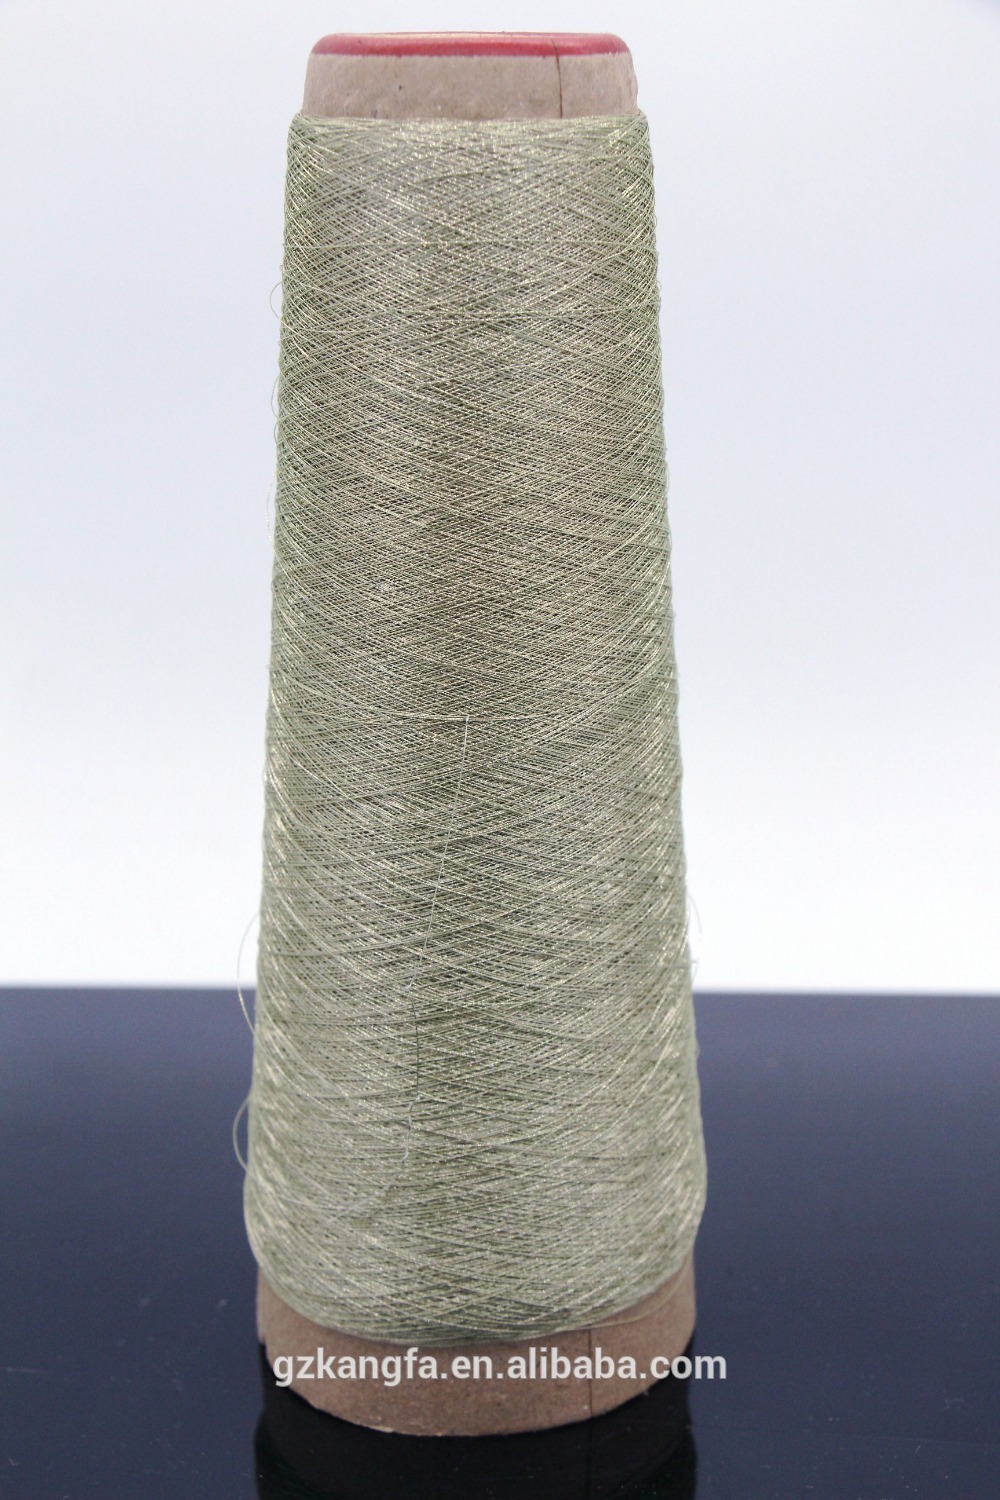 Superior quality metallic thread for embroidery